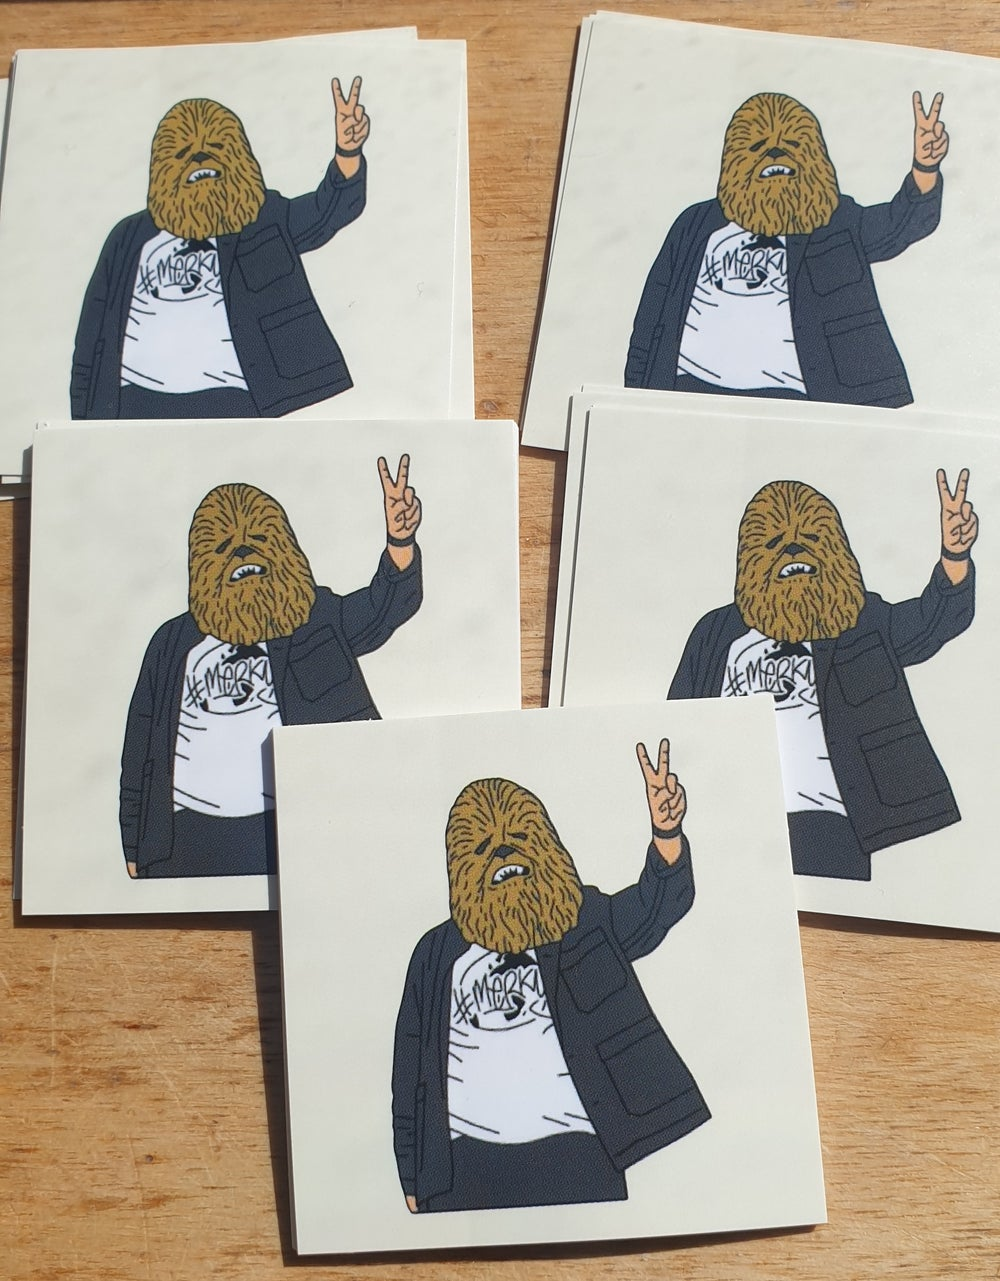 Chewis (Lewis) Capaldi 10x Stickers